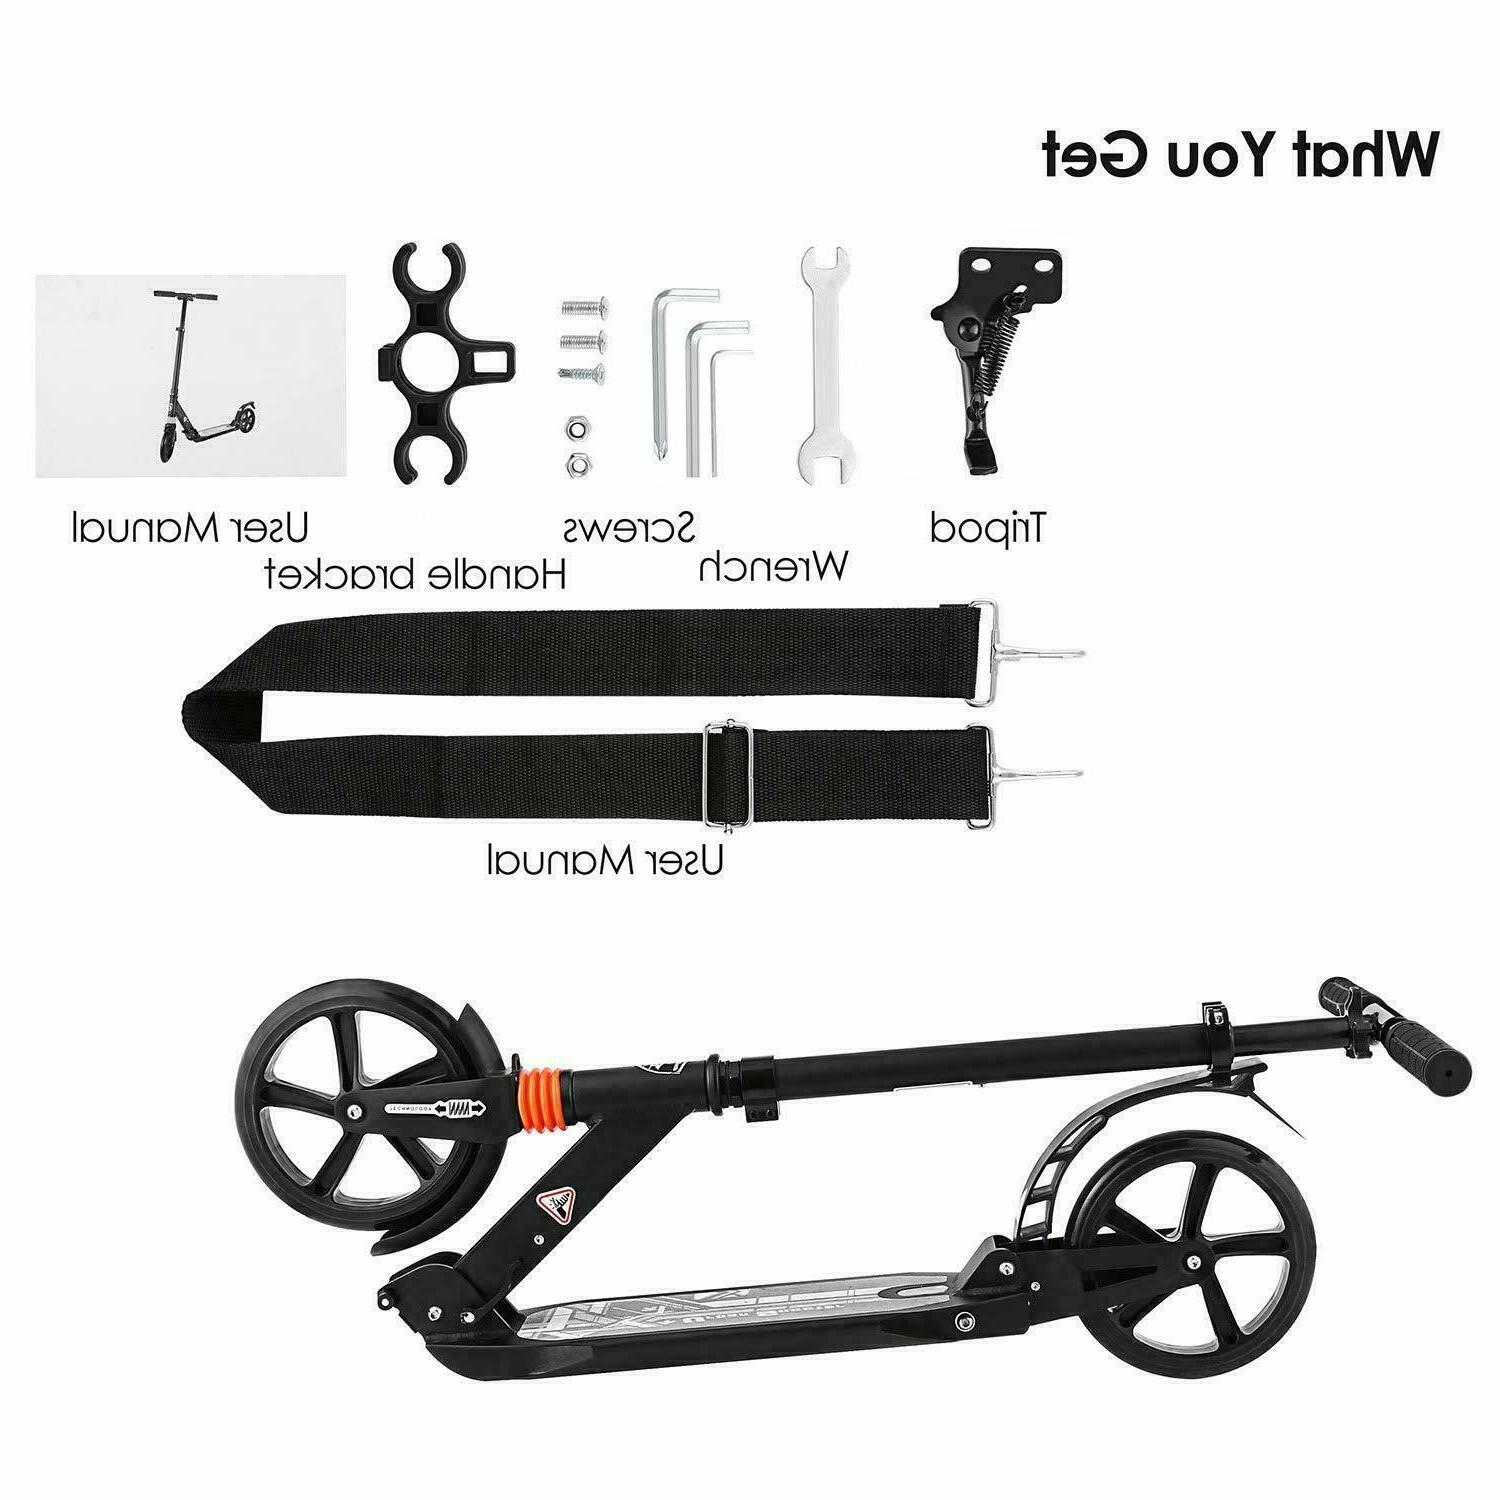 ANCHEER Adult Scooter Adjustable Wheels